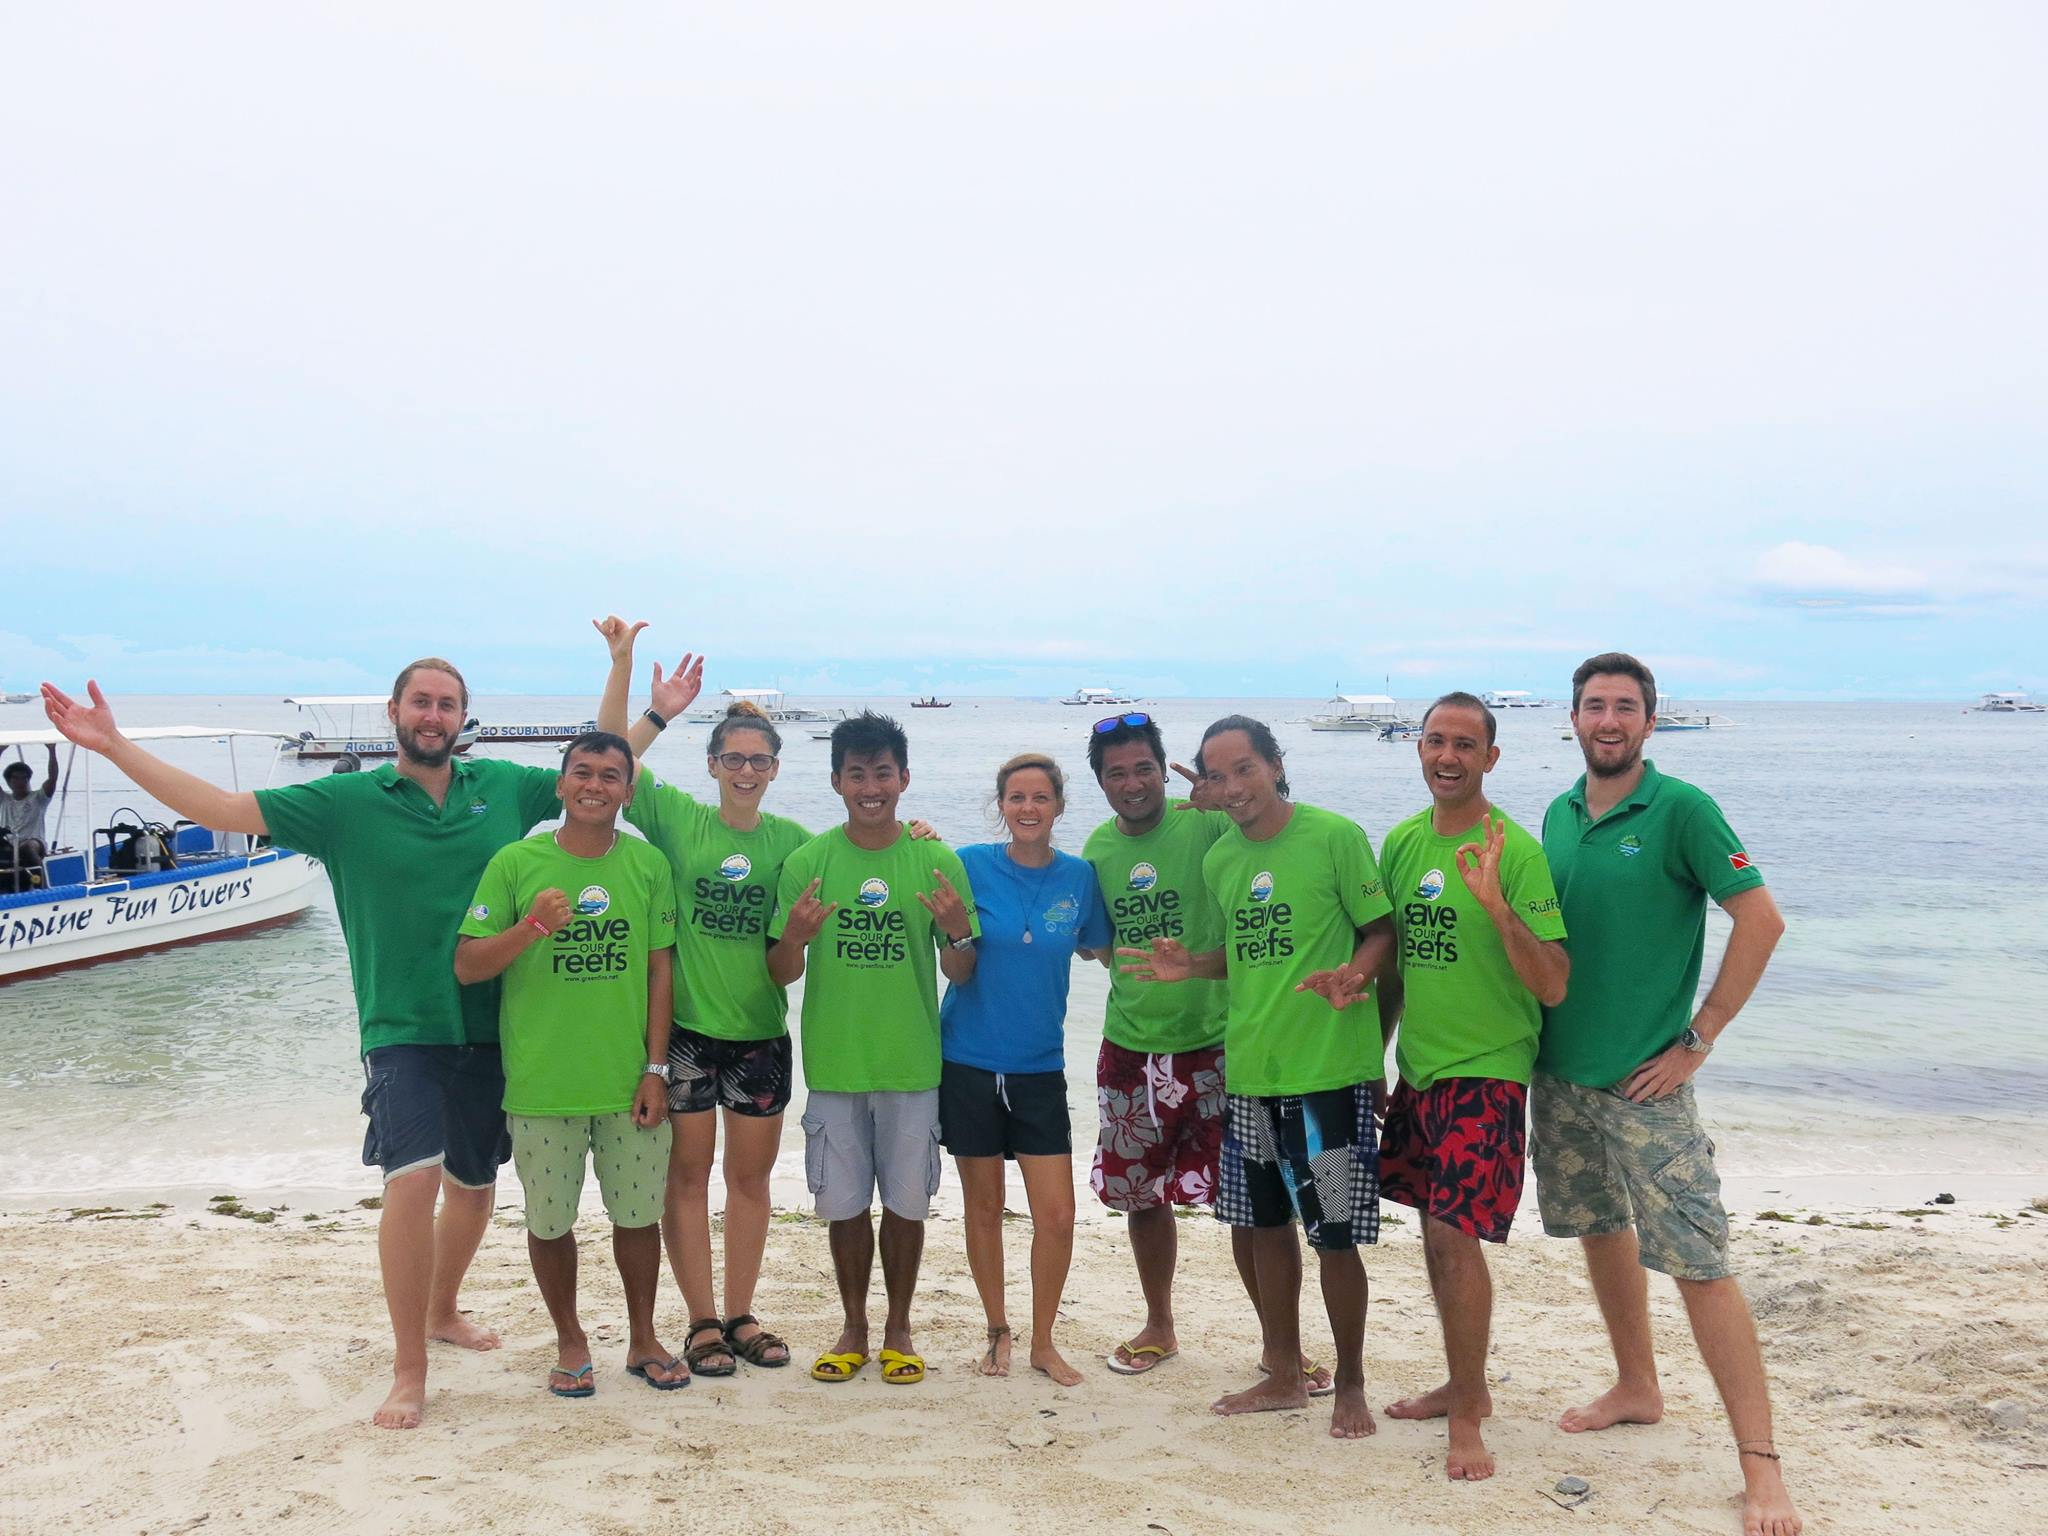 A photo of the team together with the local community in Panglao, Philippines during a Green Fins training